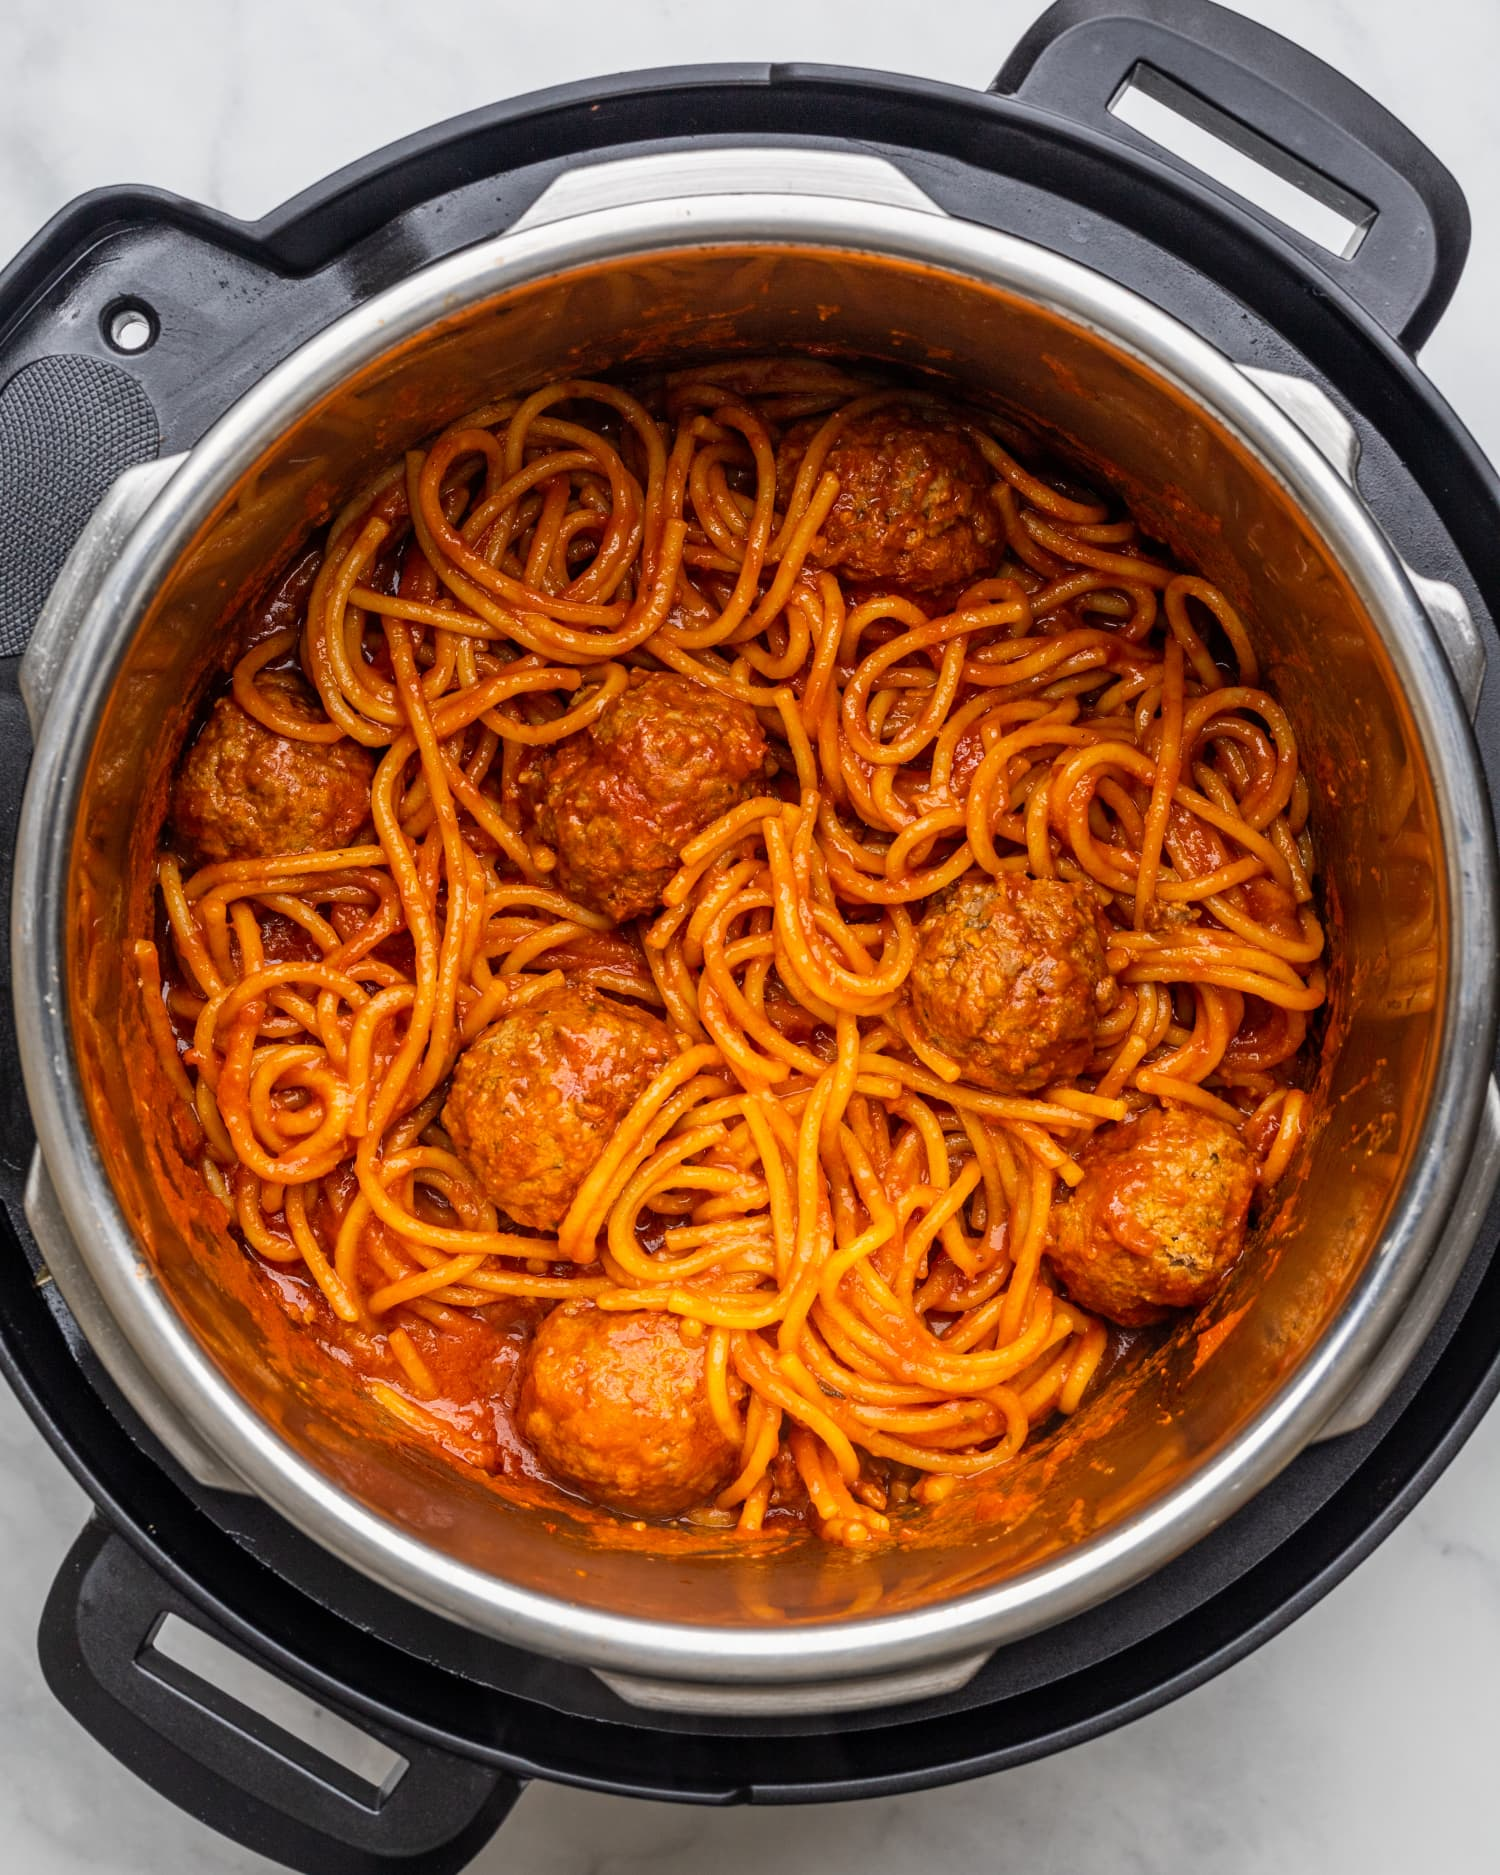 Instant Pot Spaghetti & Meatballs Is an Instant Classic